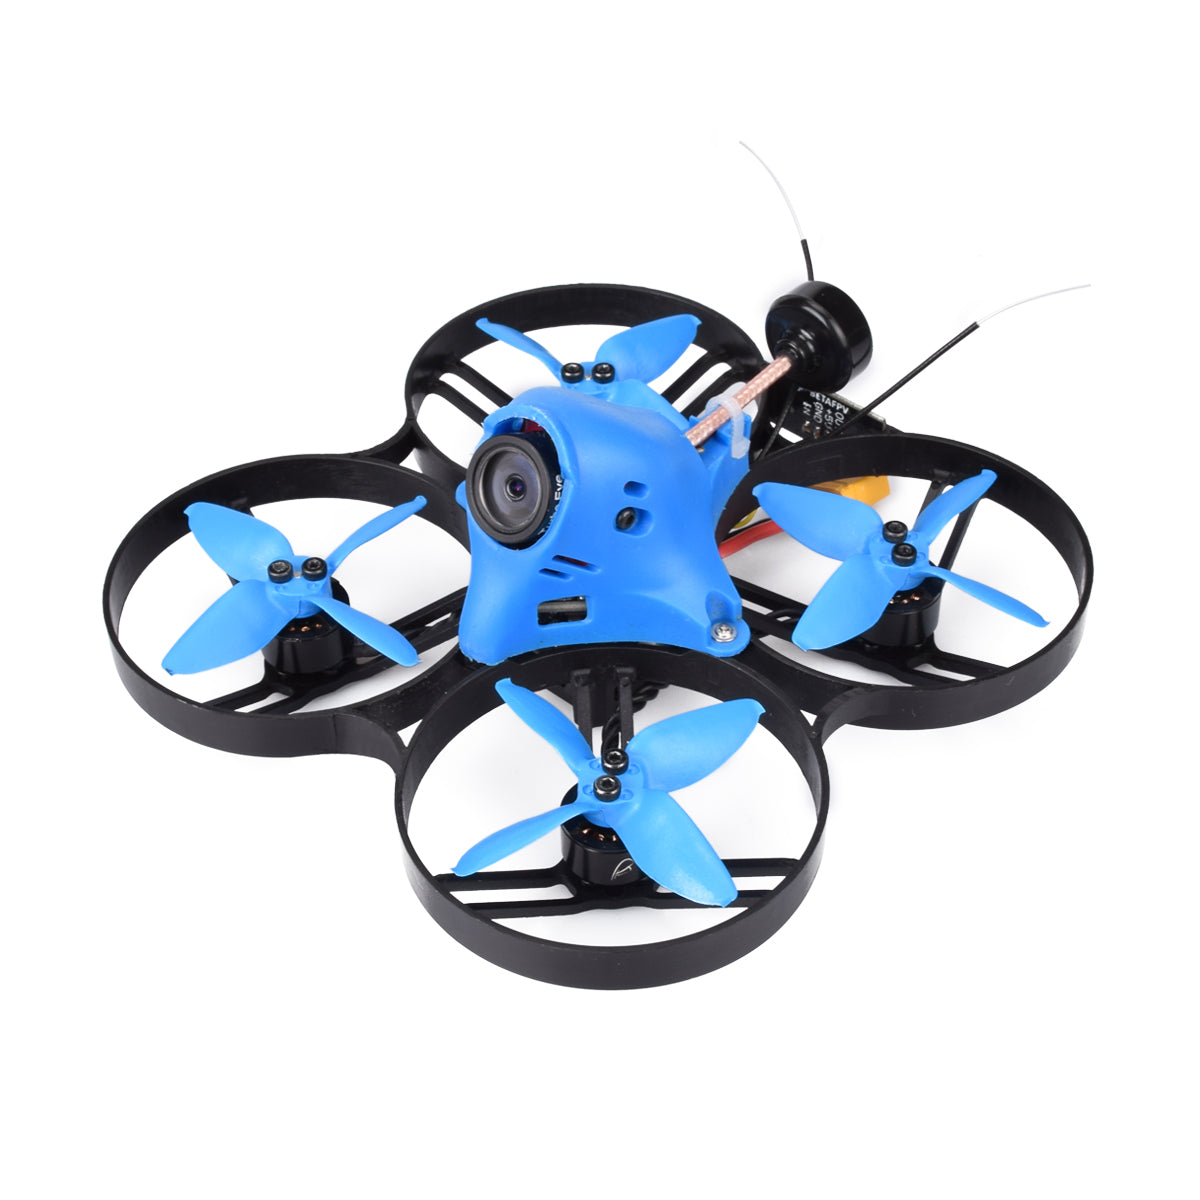 Quad BETAFPV - BETA85X HD V2 - 3-4S